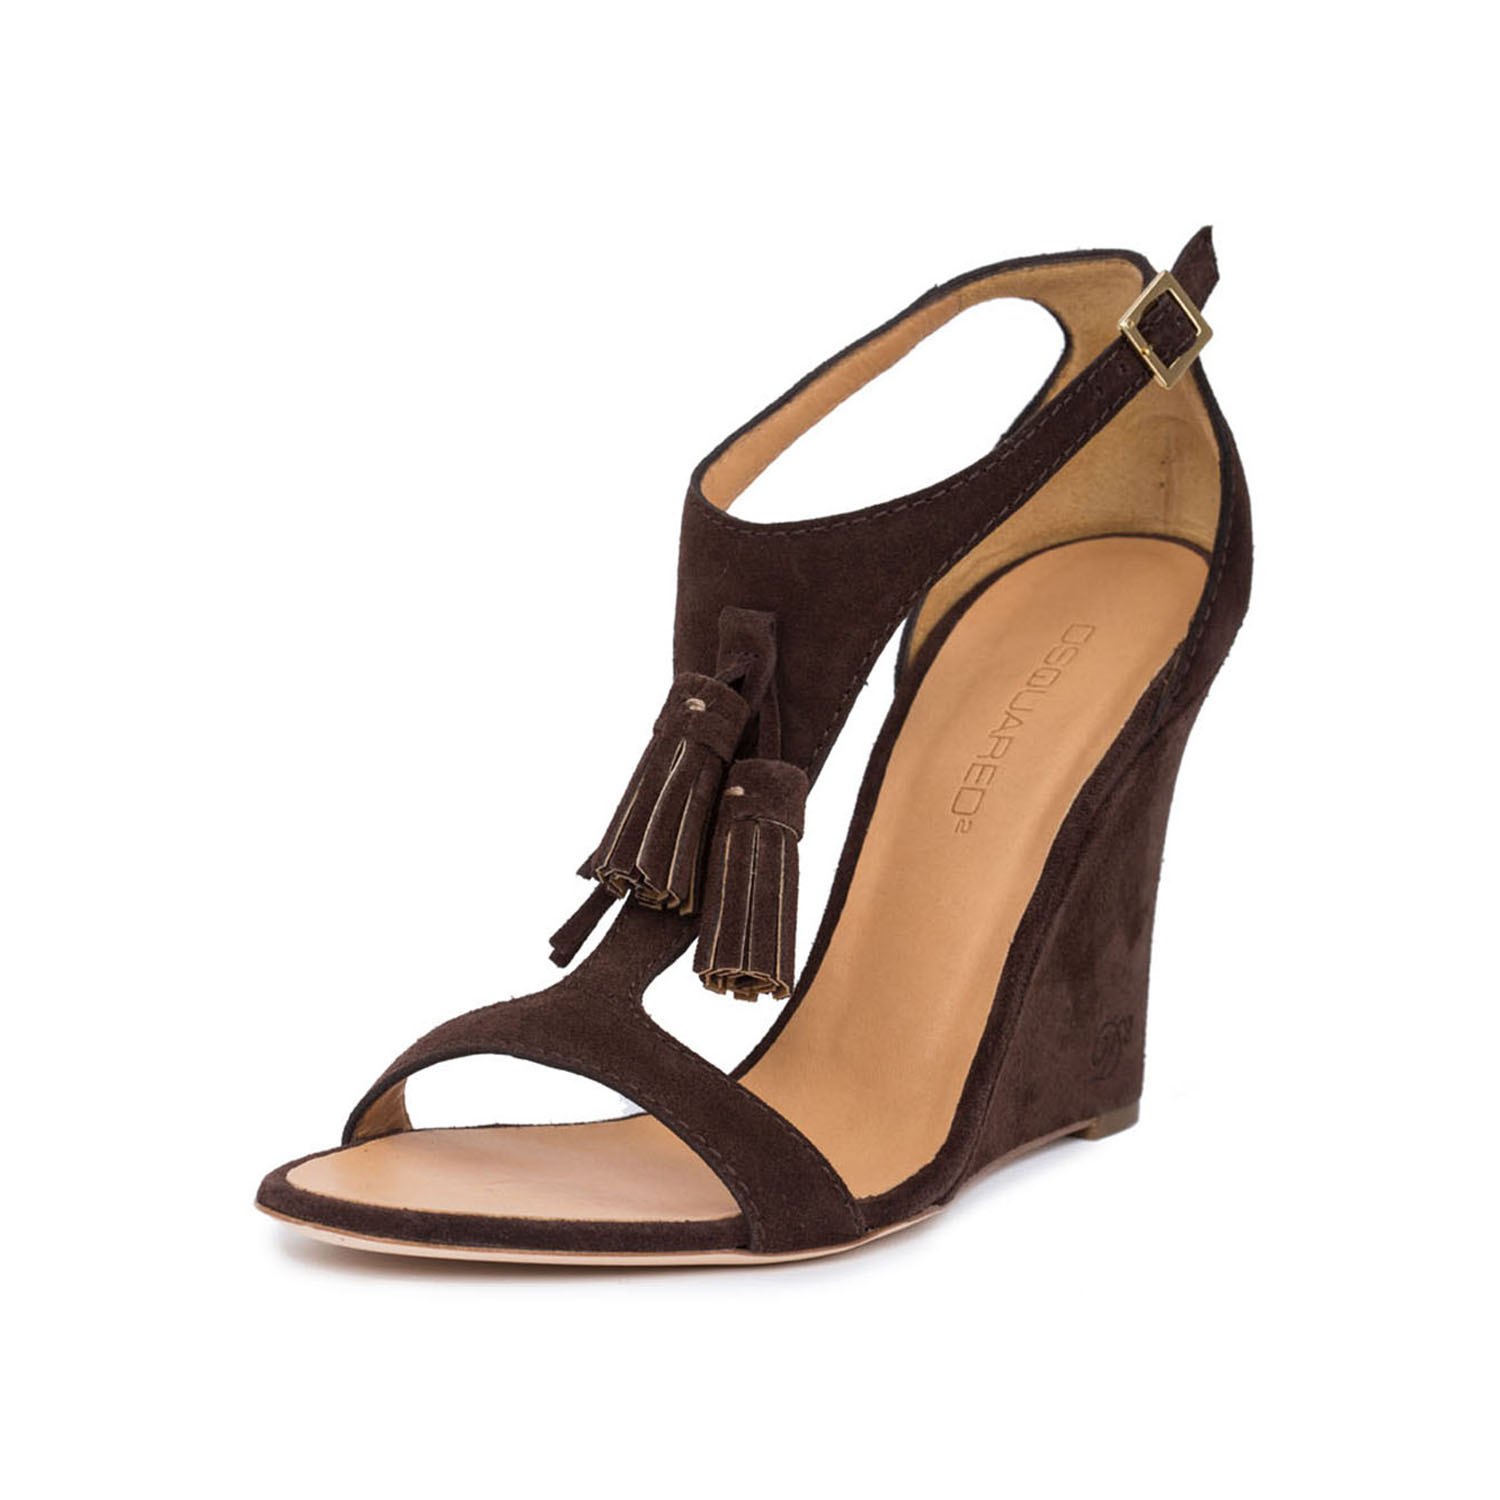 Dsquared2 Women Brown Suede Tassel T-Strap Slim Wedge High Heels Sandals Shoes US 9 EU 39